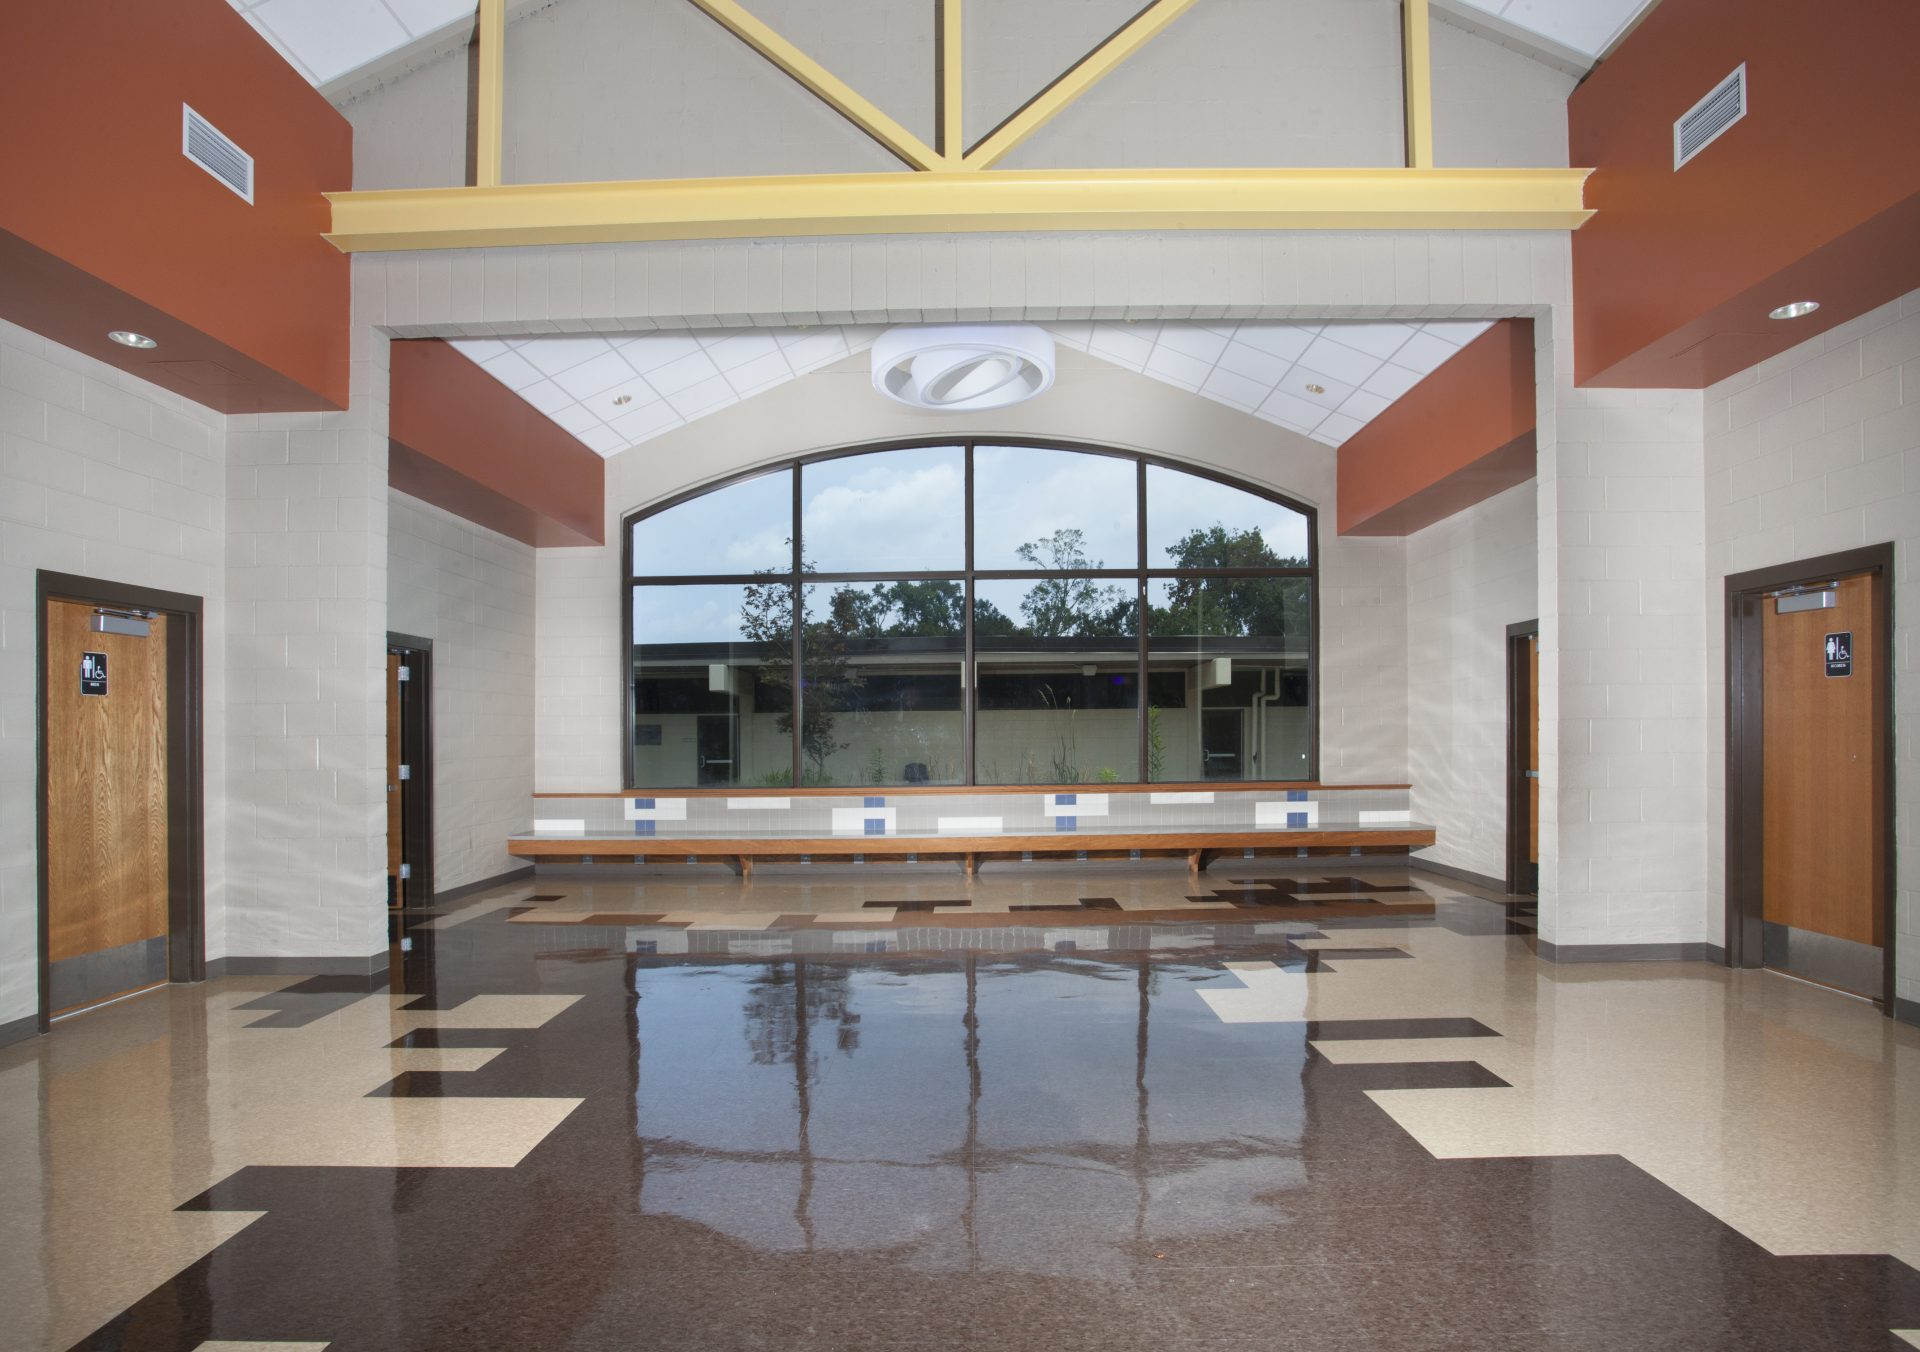 St. Amant lobby view.